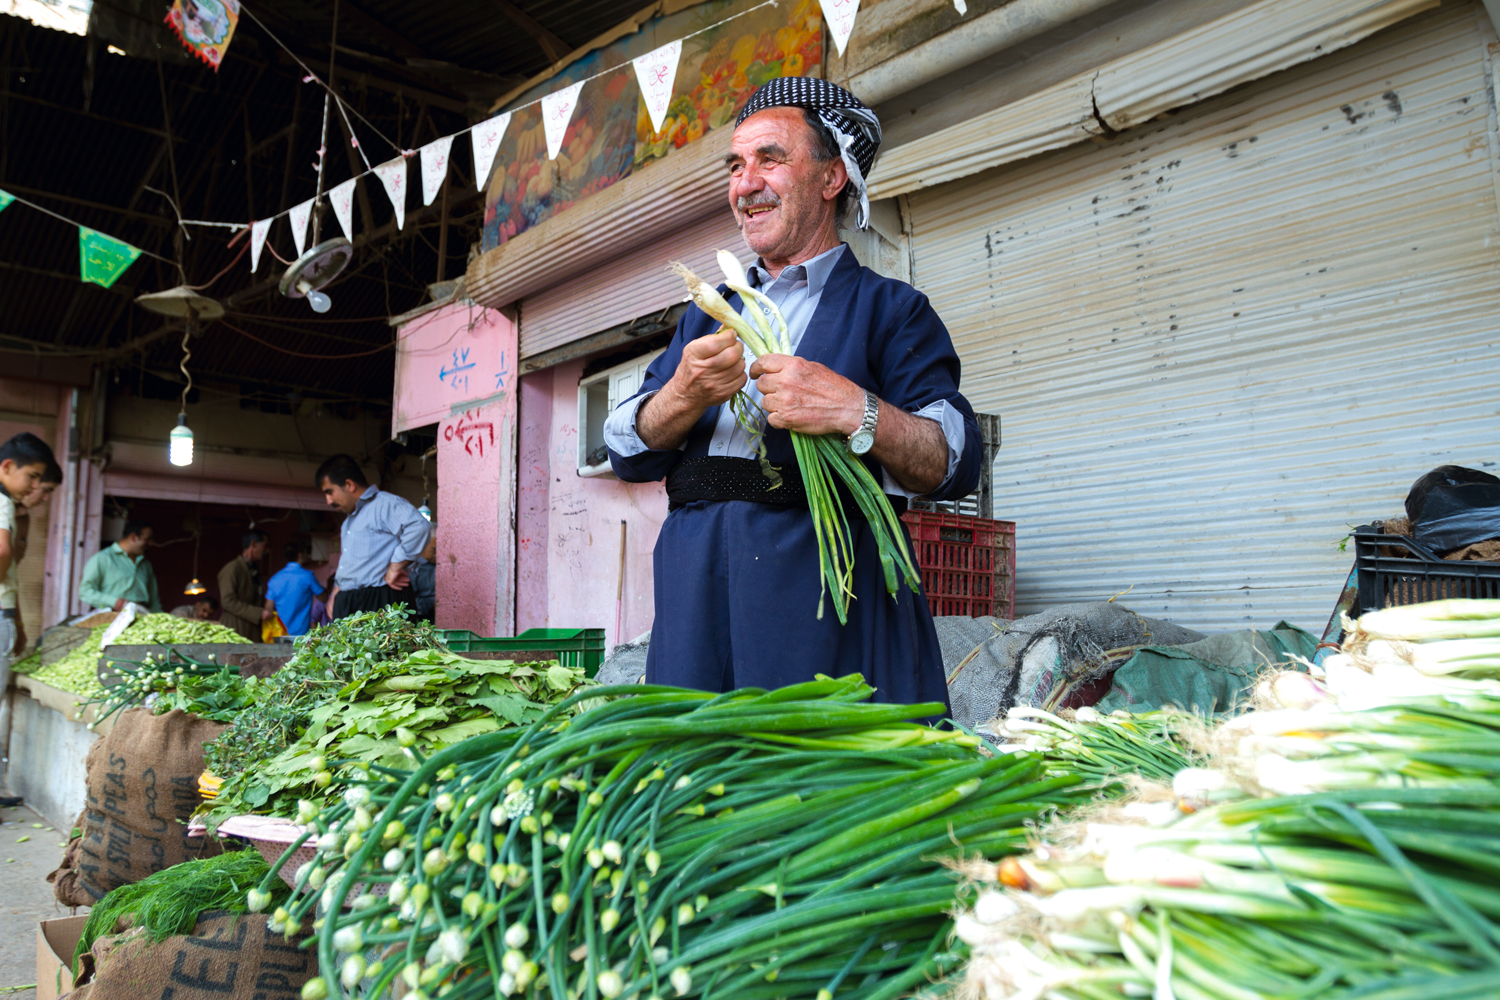 At Sulaymaniyah's markets, local produce was once the rule. Now, it is the exception. People say they recognize the poor quality of imported vegetables, but cannot afford the high prices of locally-grown—if they can find them at all. In an effort to encourage local farmers, the Ministry of Agriculture has often declared a forthcoming embargo on the import of many native crops (eg. cucumber, onions), but the ban has yet to be implemented.